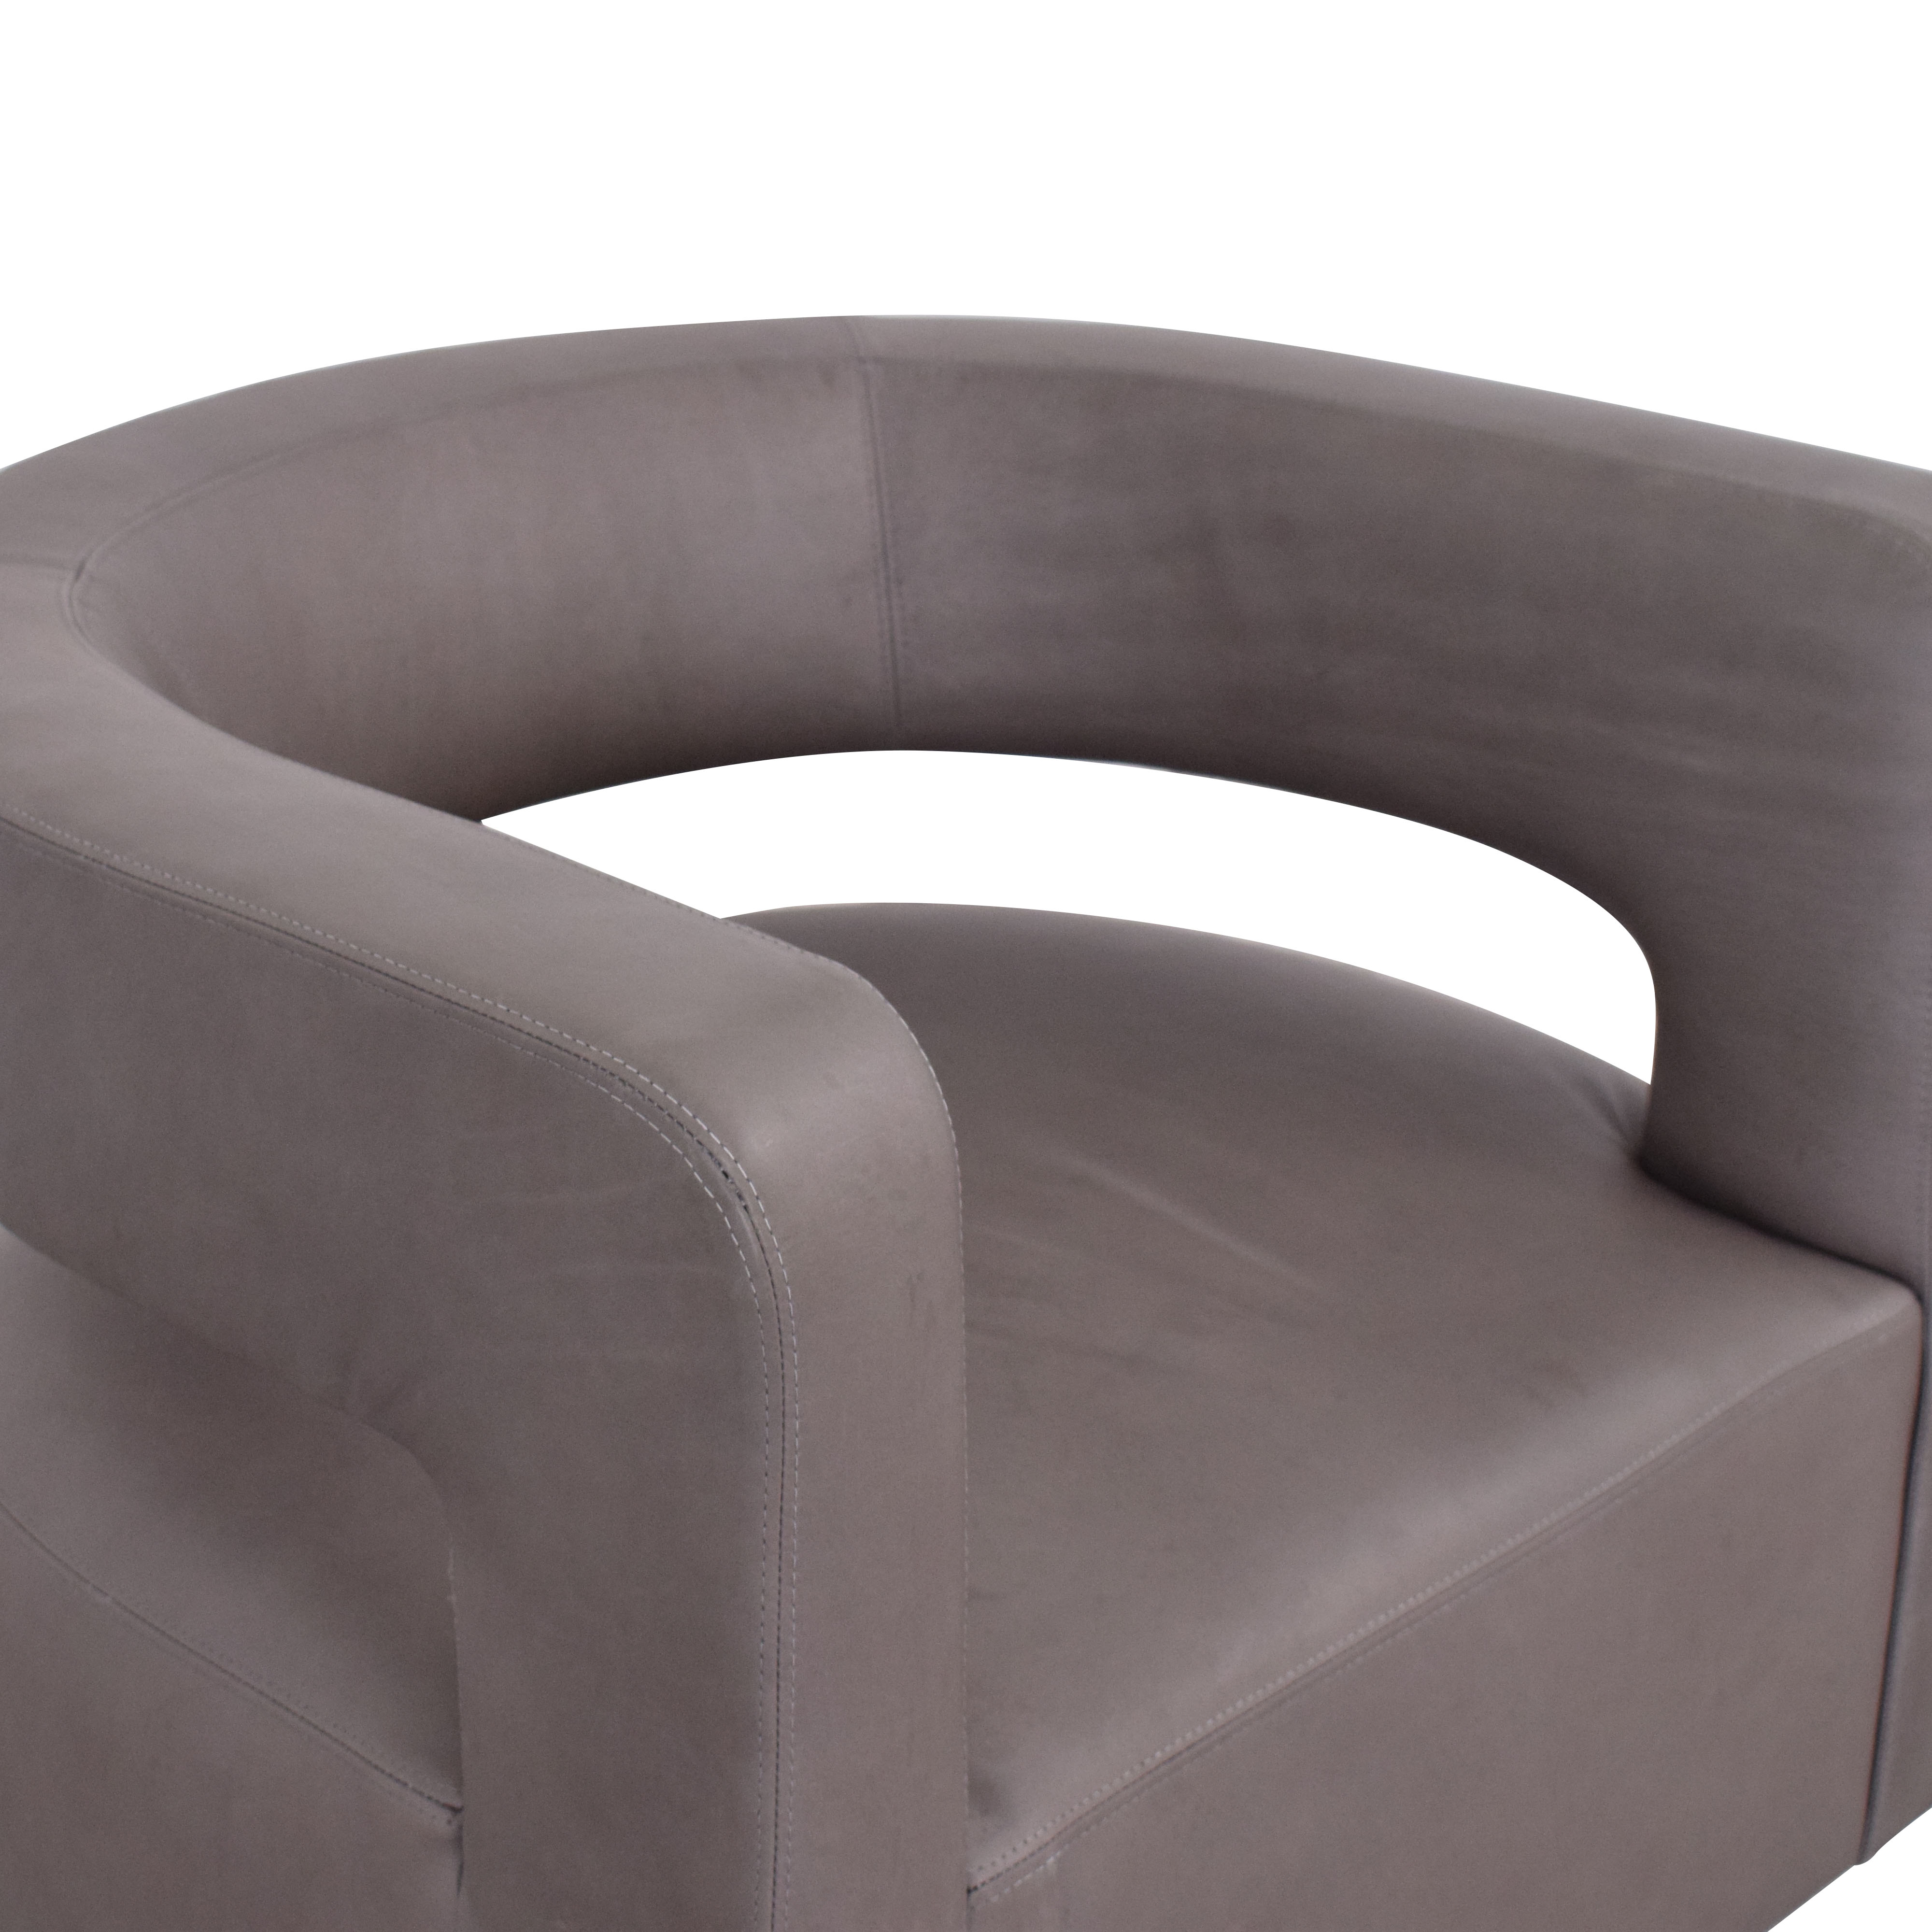 Restoration Hardware Restoration Hardware Drew Curved Leather Swivel Chair on sale